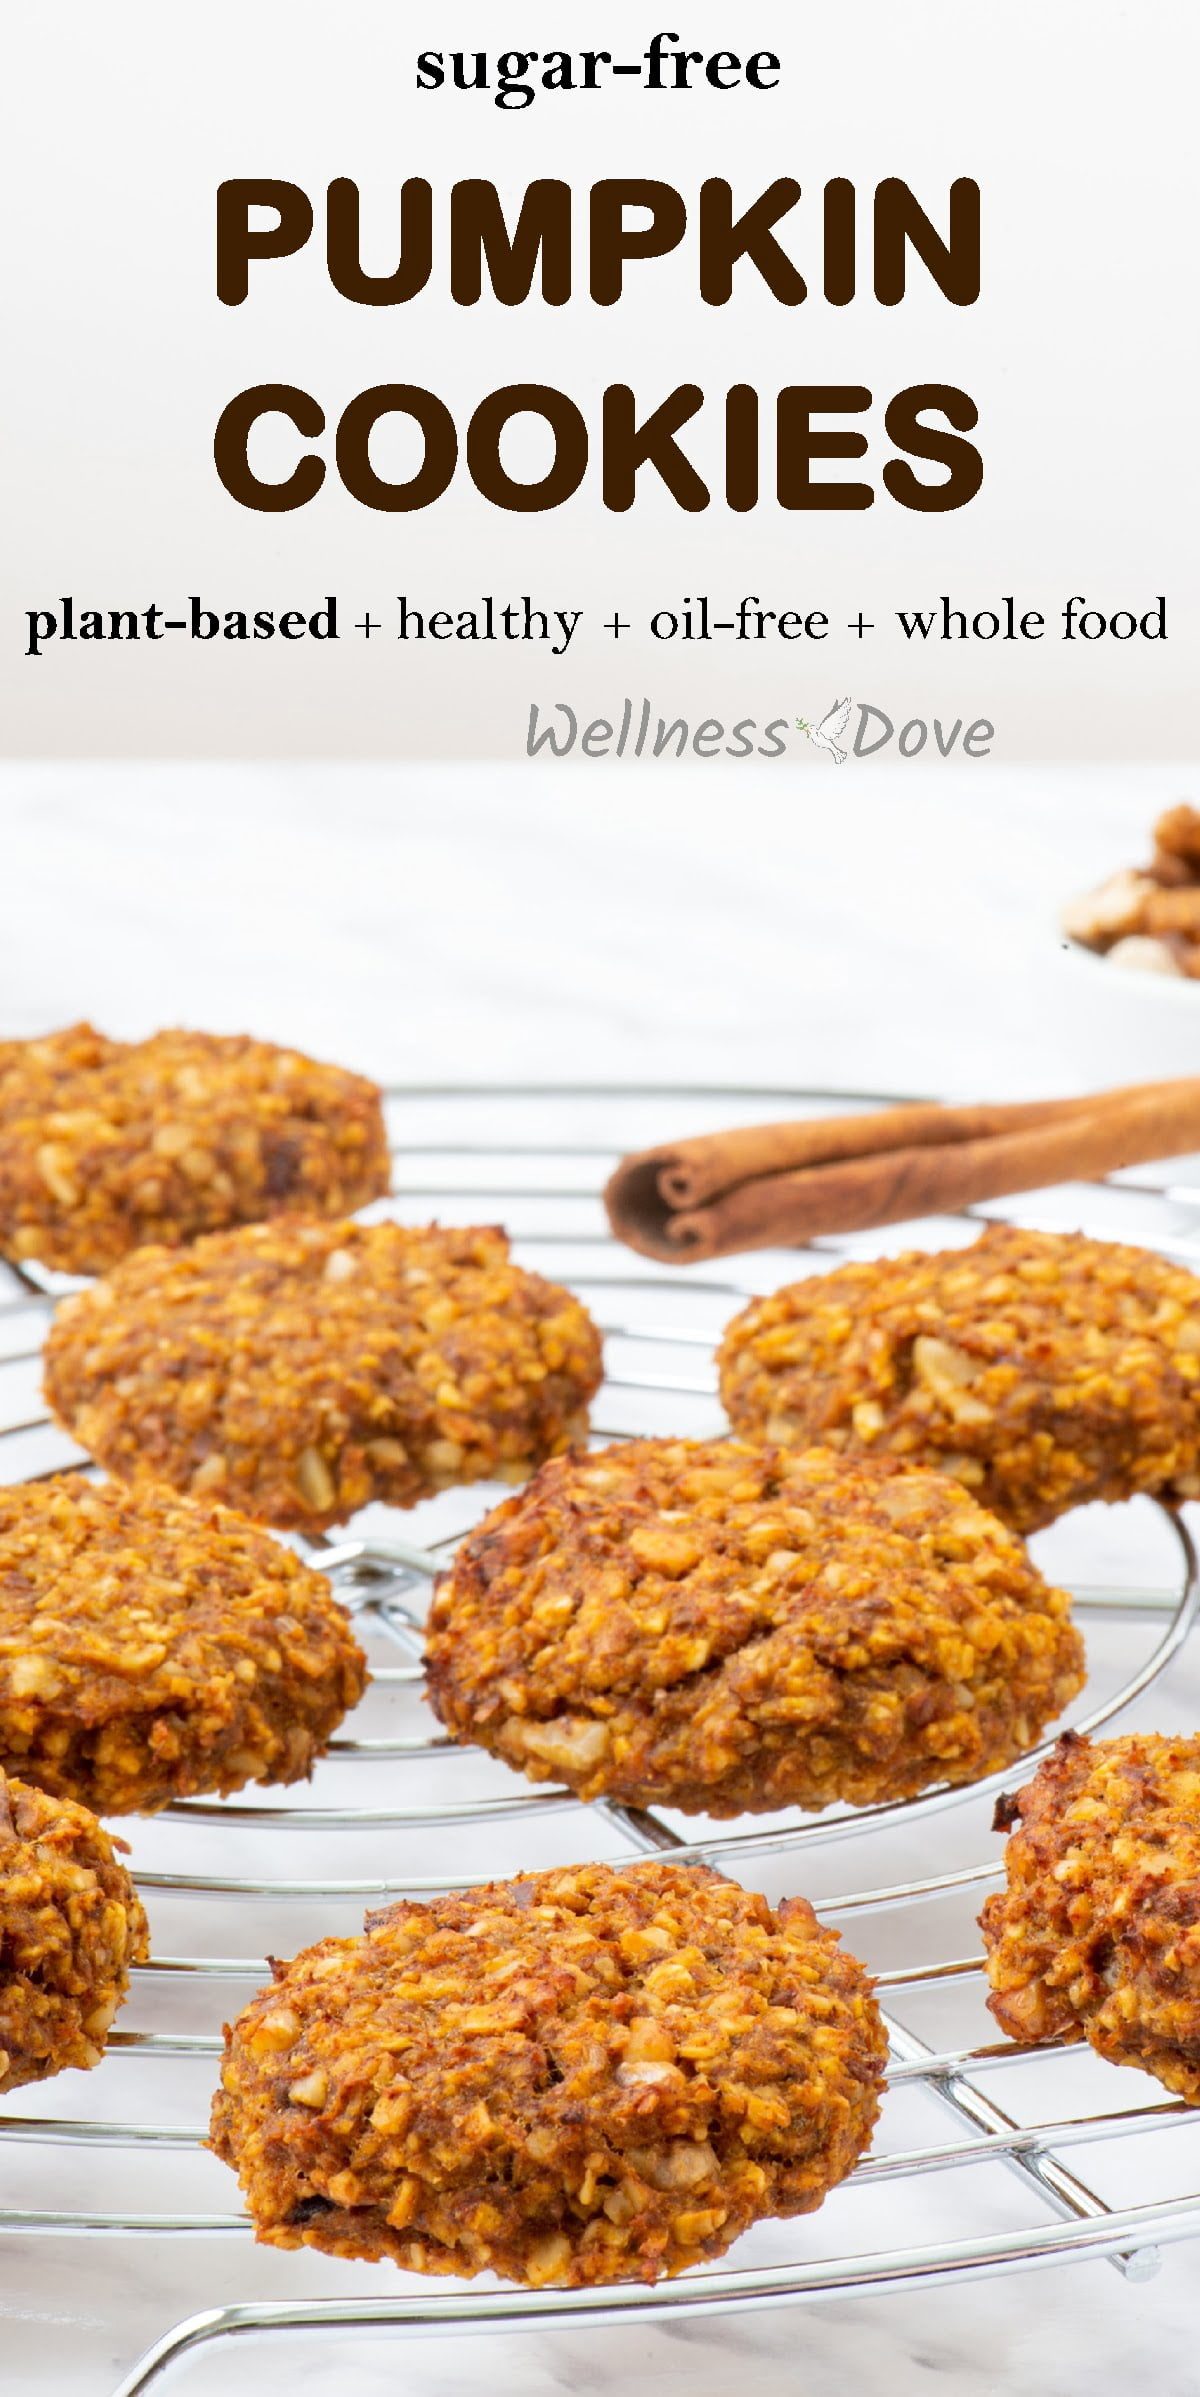 A delicious snack made with whole natural plant foods. Without any sugar or oil, this whole food, plant based cookies are a delightful way to boost your energy or enjoy a guilt-free moment of bliss! Truly nourishing, they will help you stay healthy and lose the extra weight!